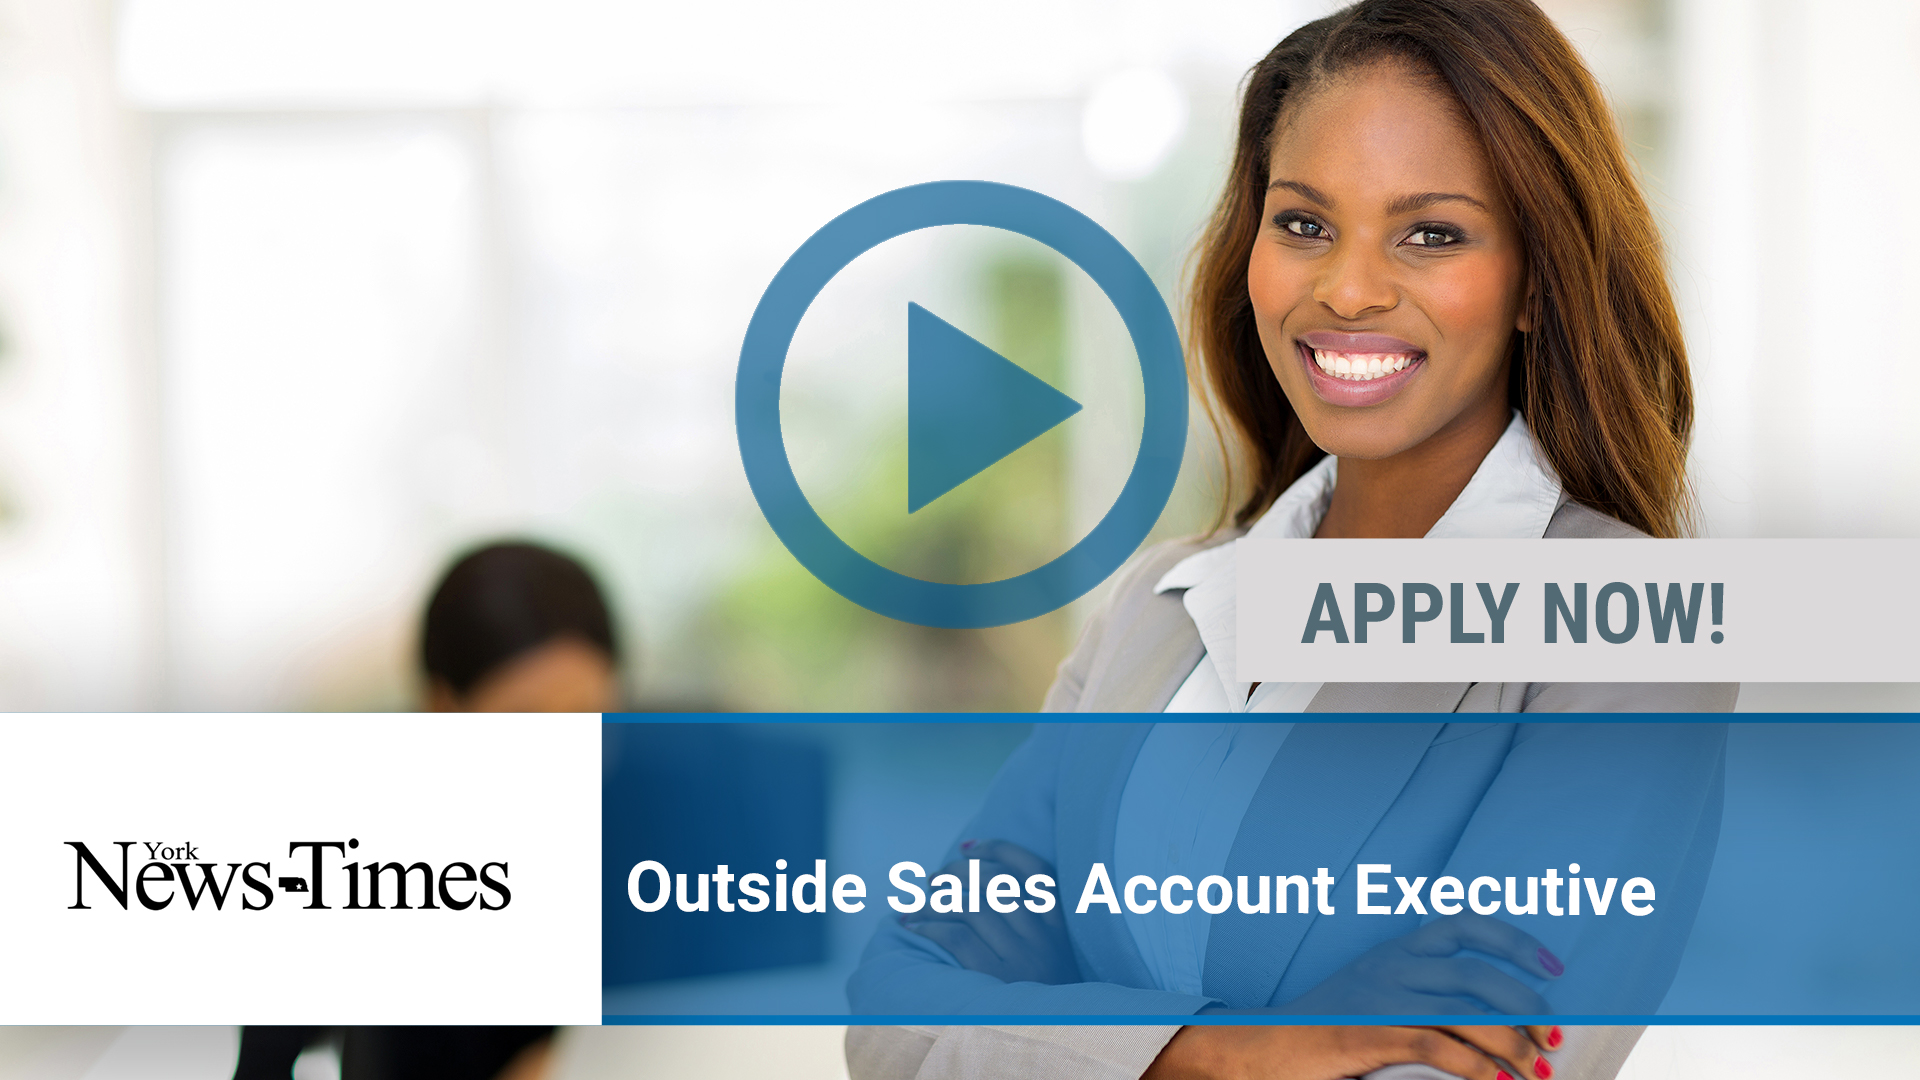 Watch our careers video for available job opening Outside Sales Account Executive in York, NE